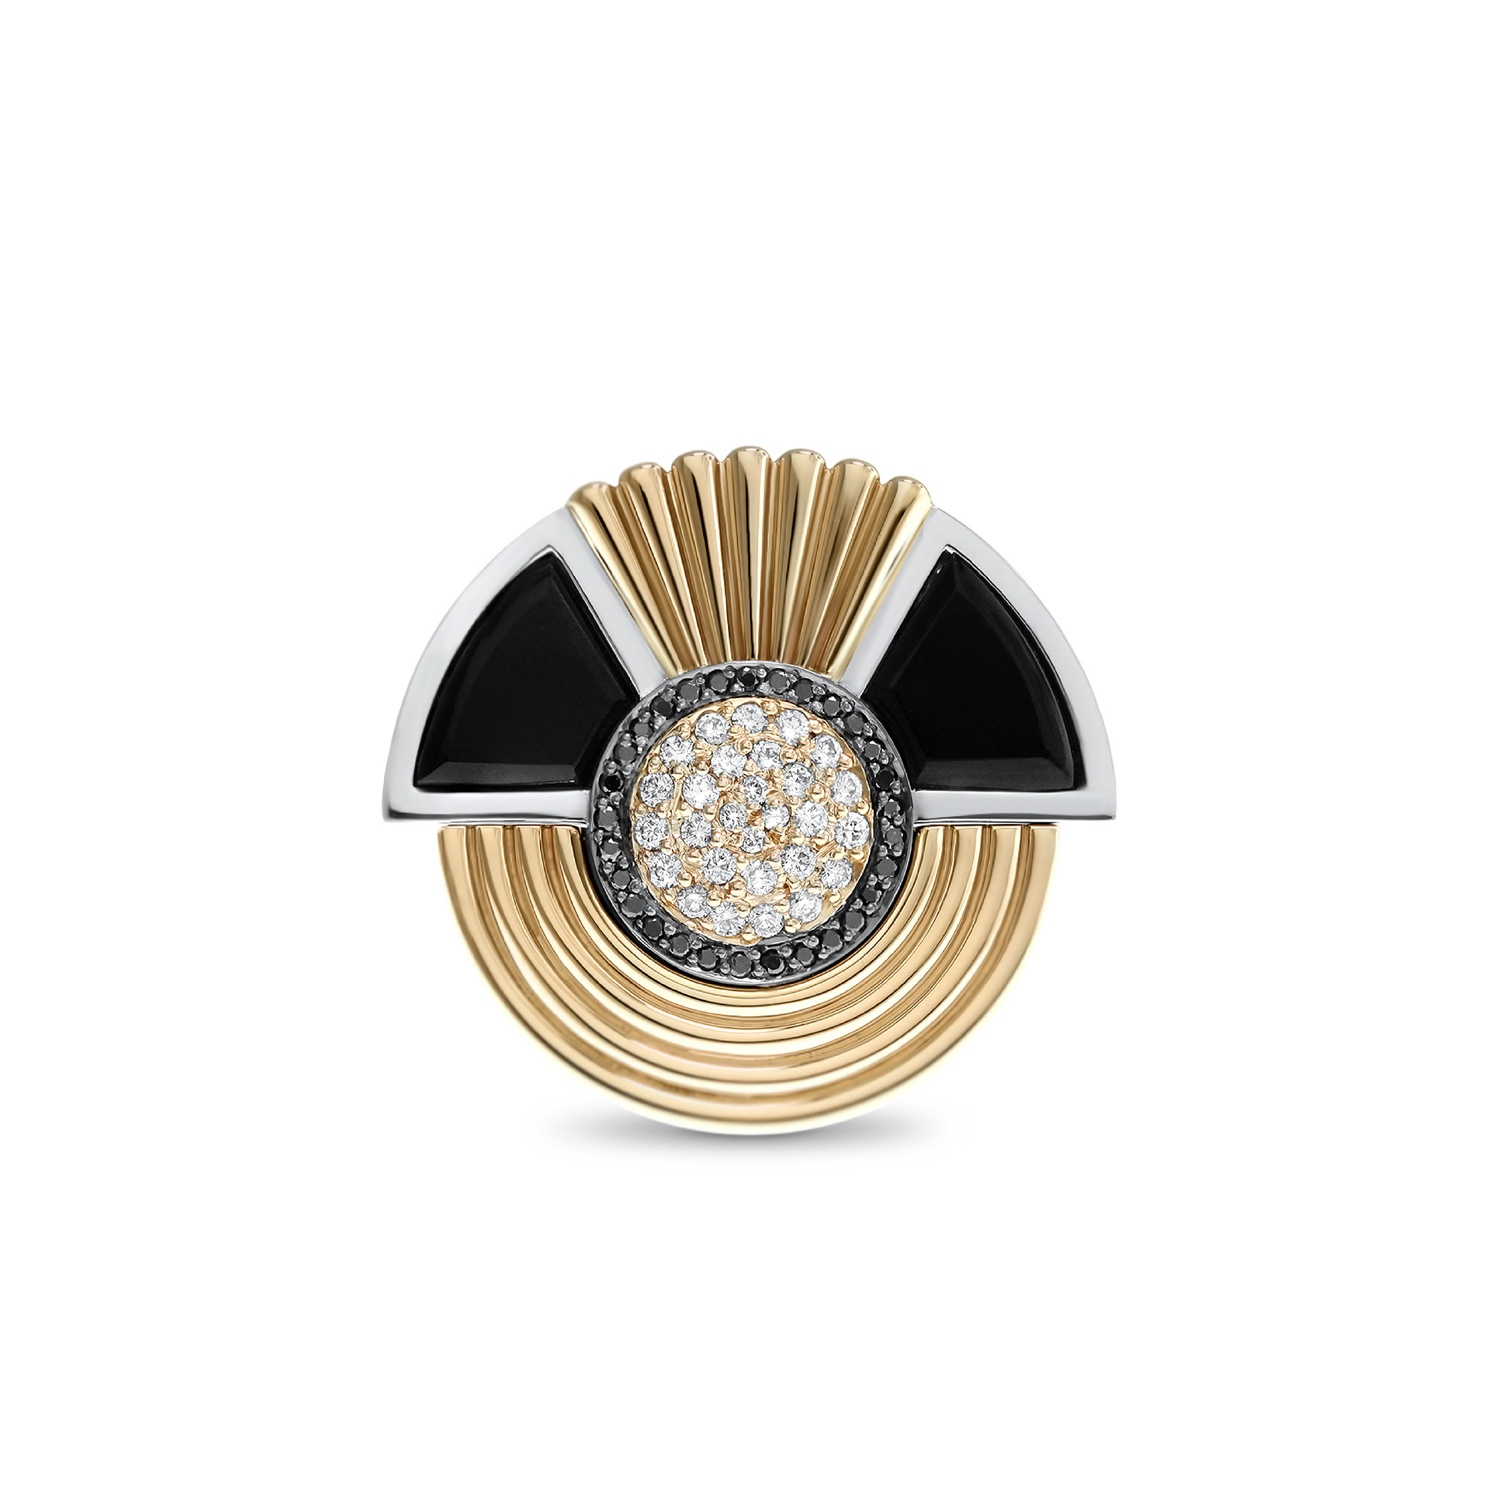 Art deco style cleopatra ring in 18k white and rose gold for Deco maison rose gold